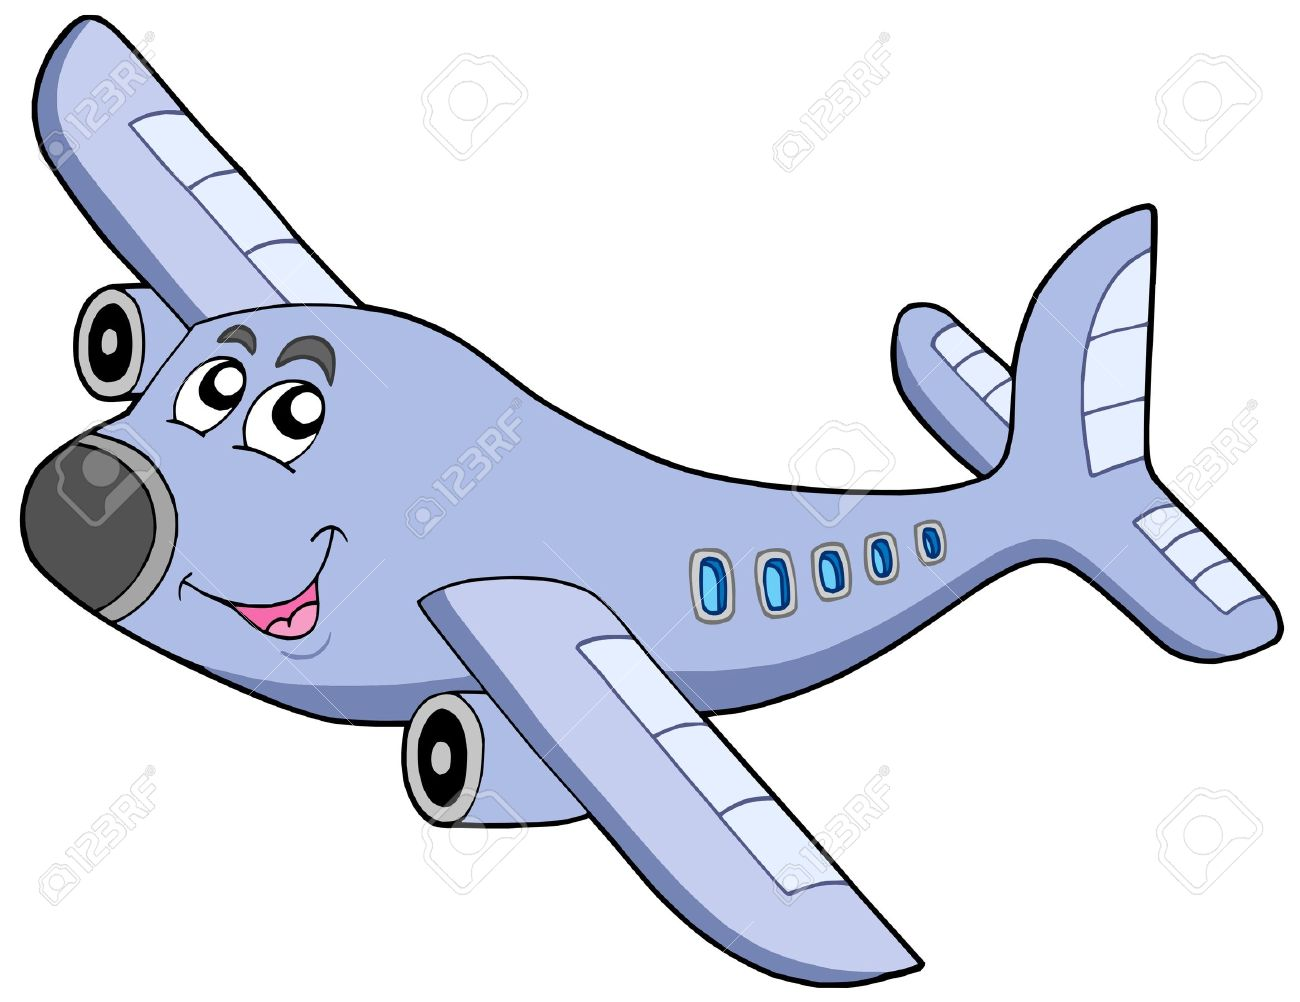 Cartoon Airplane On White Backgroud